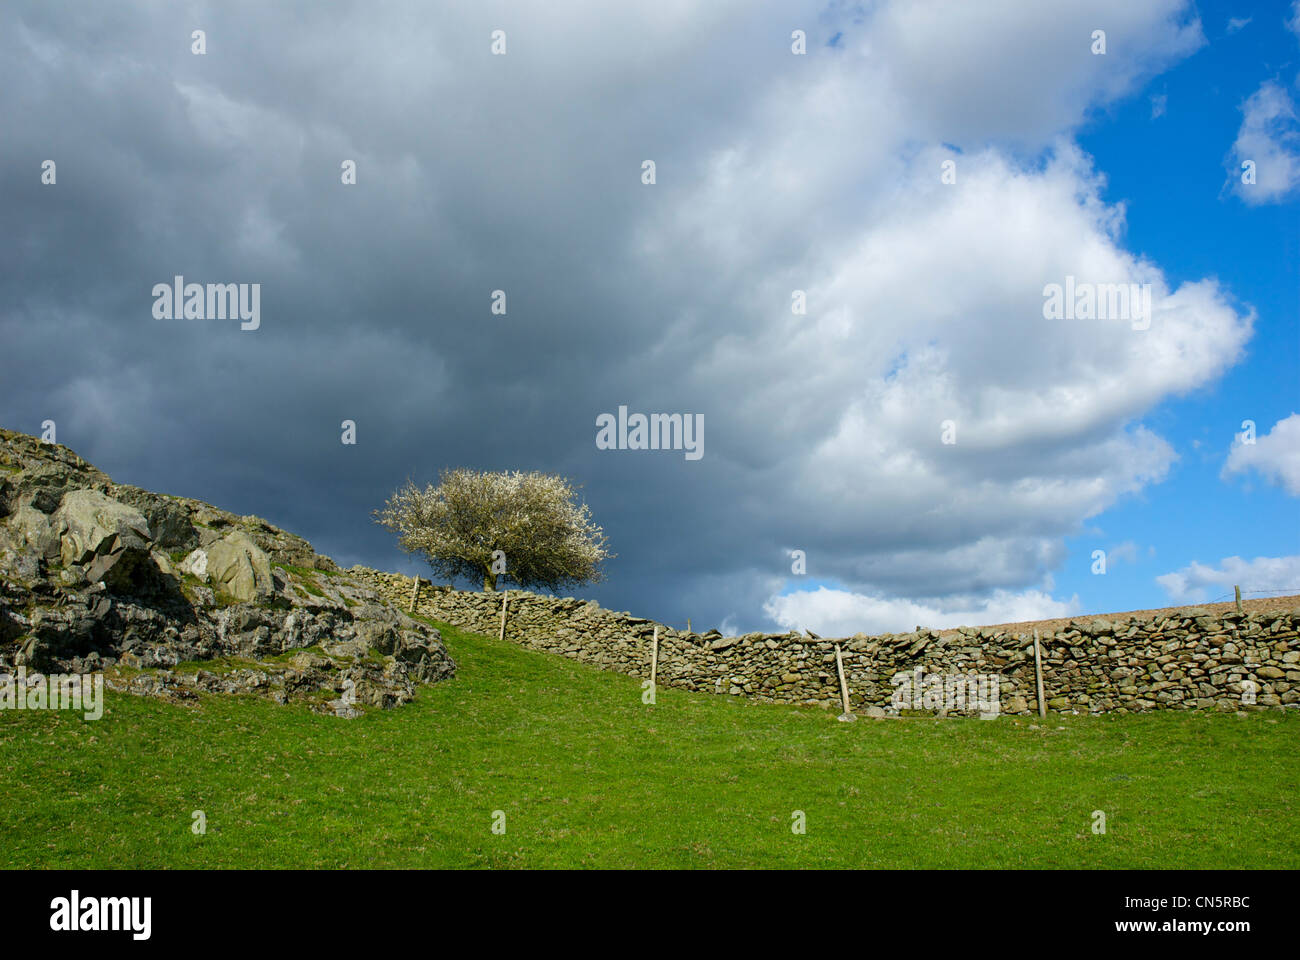 Hawthorn tree coming into blossom, near Ulverston, Cumbria, England UK - Stock Image